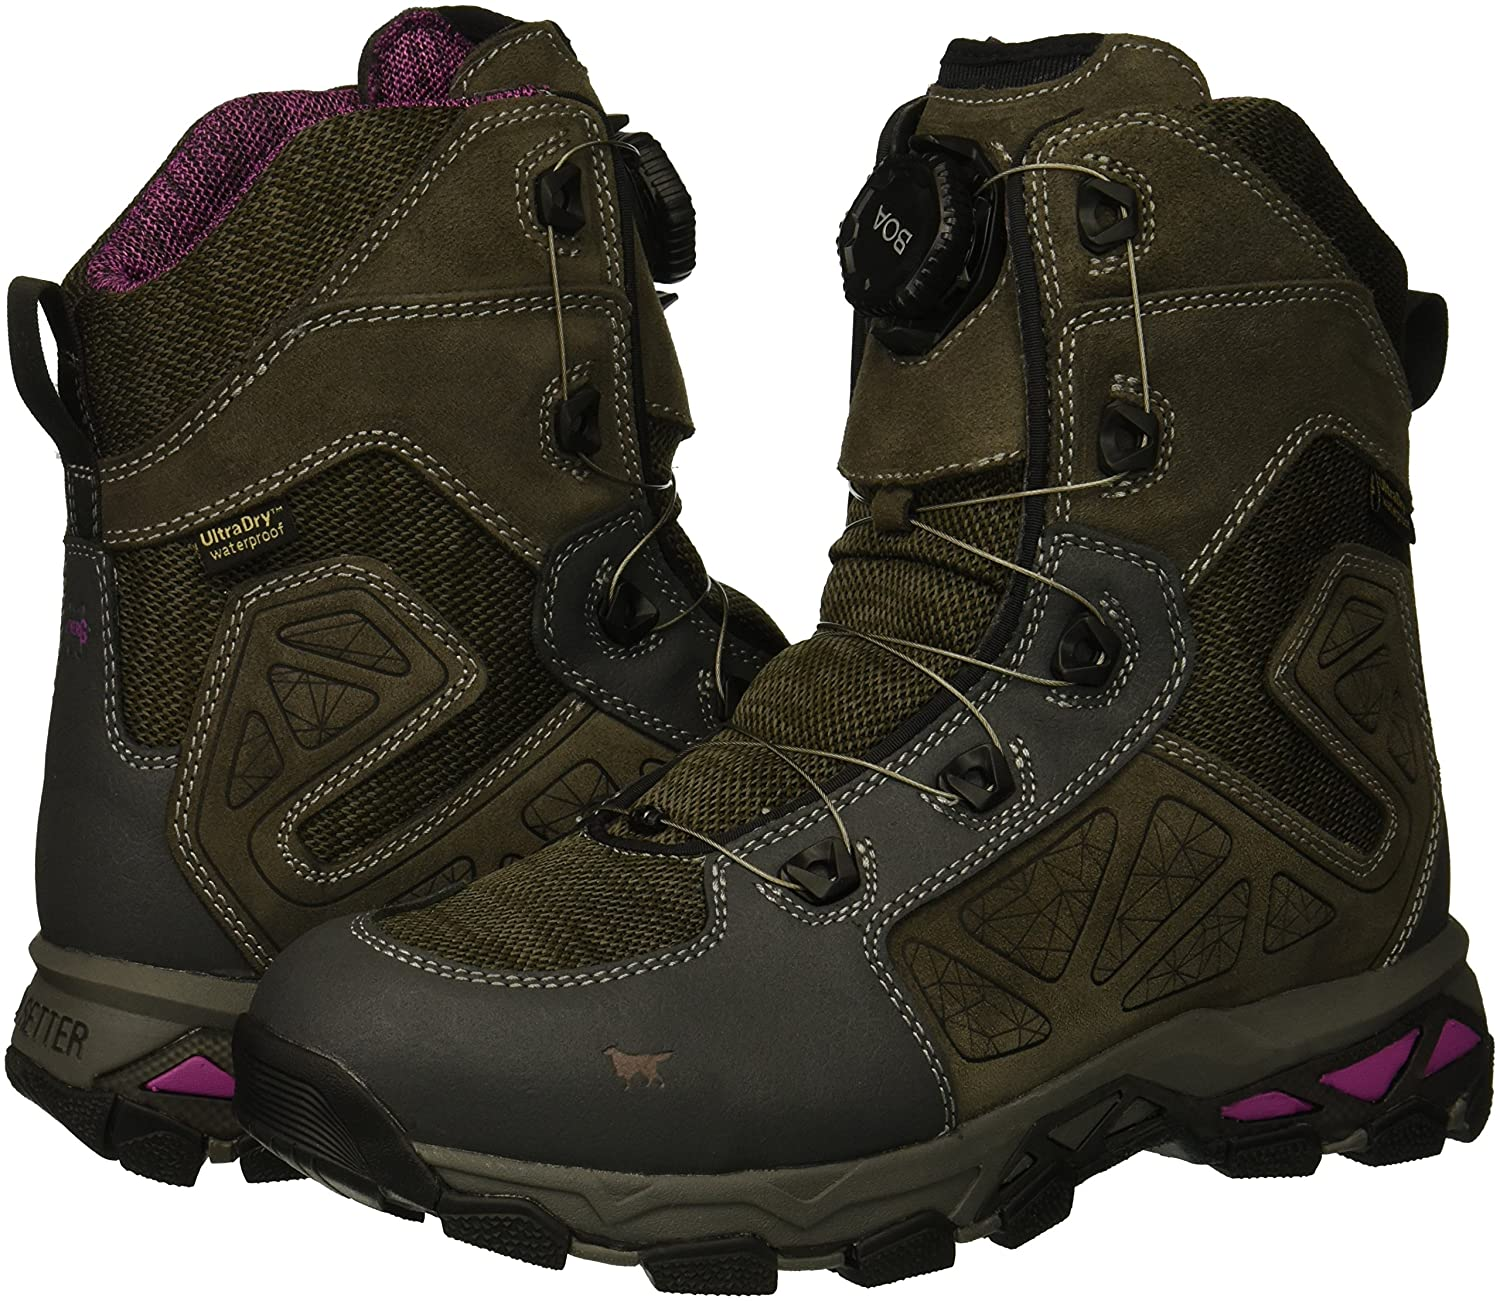 Irish Setter Womens Ravine Hiking Boot Brown//Lilac 7 D US 02893D 070